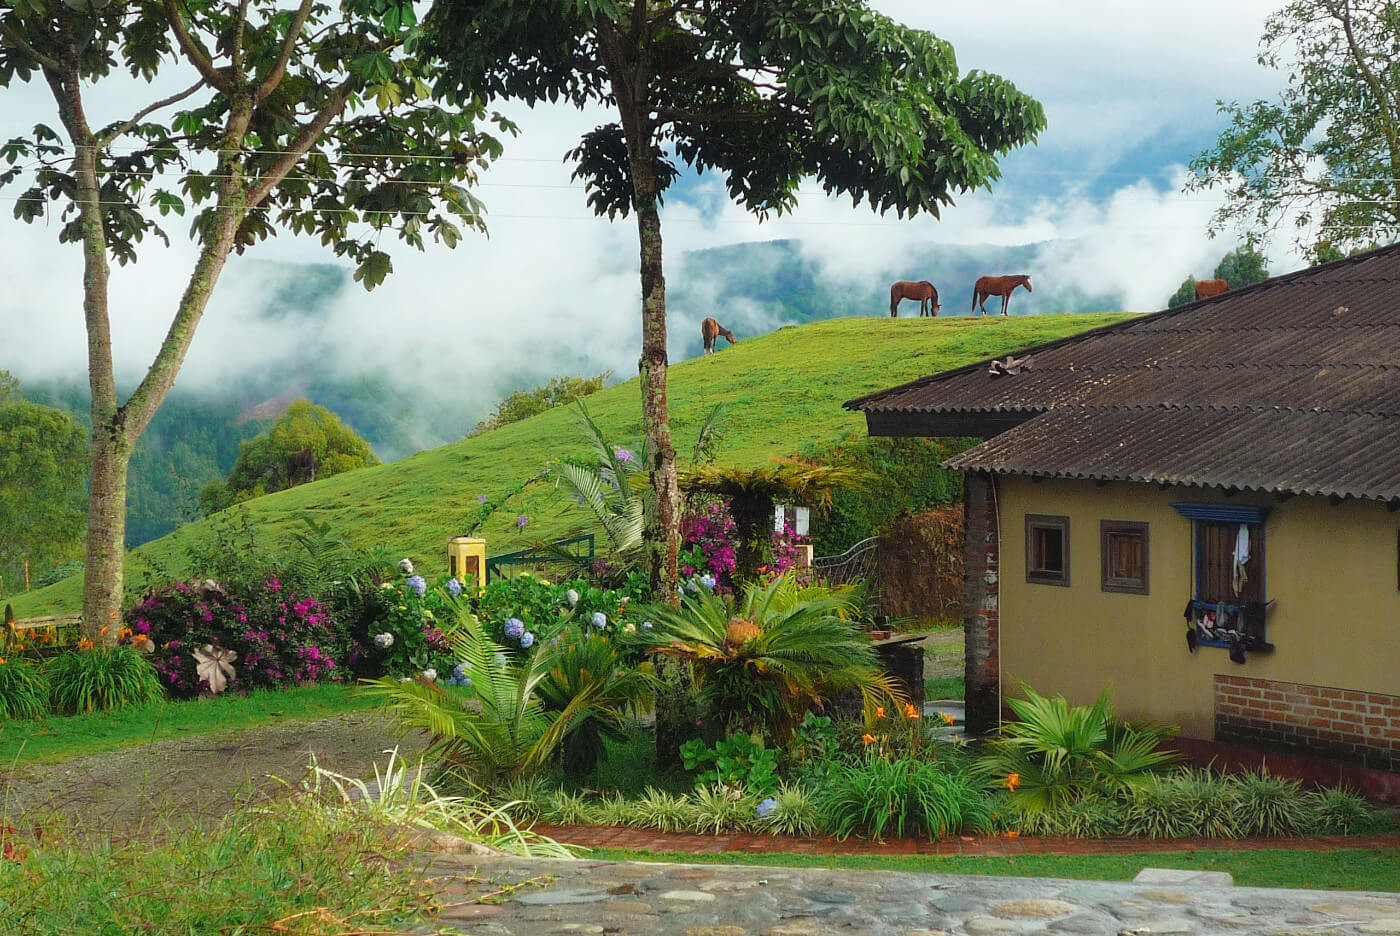 La Serrana Hostel in Salento, Colombia is one of the best hostels in Colombia!